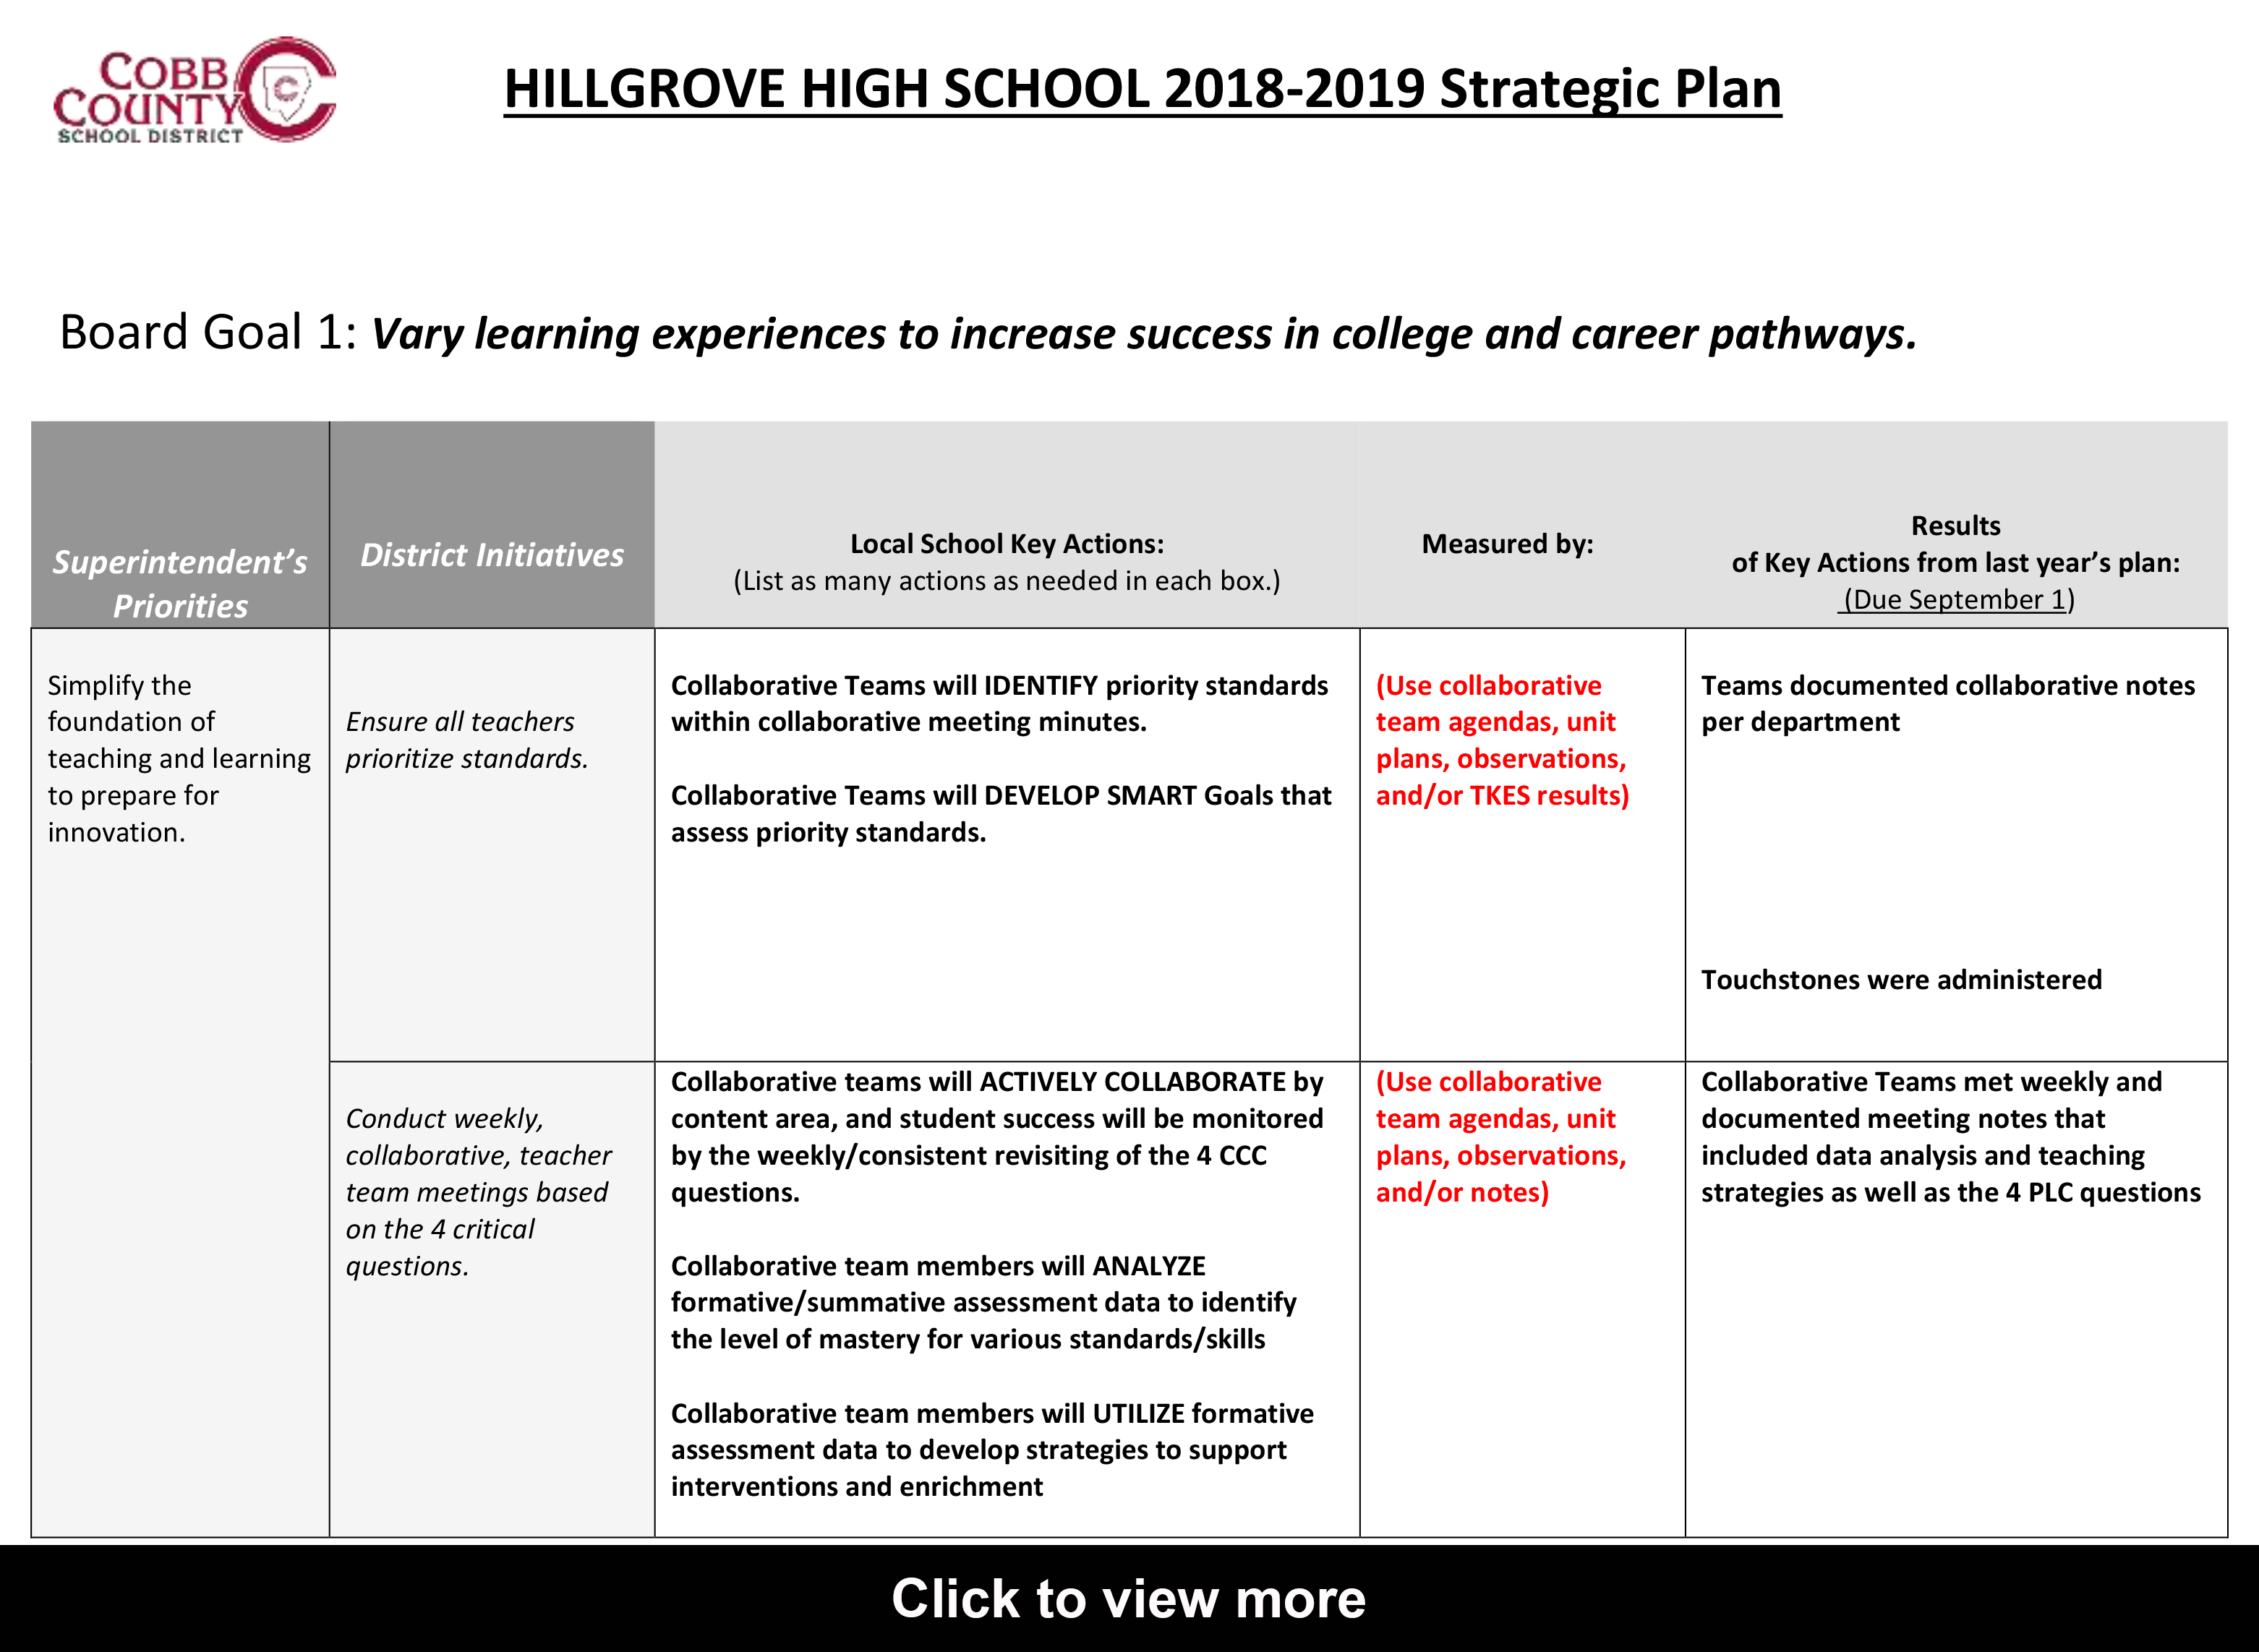 Hillgrove High School Strategic Plan Click to view more